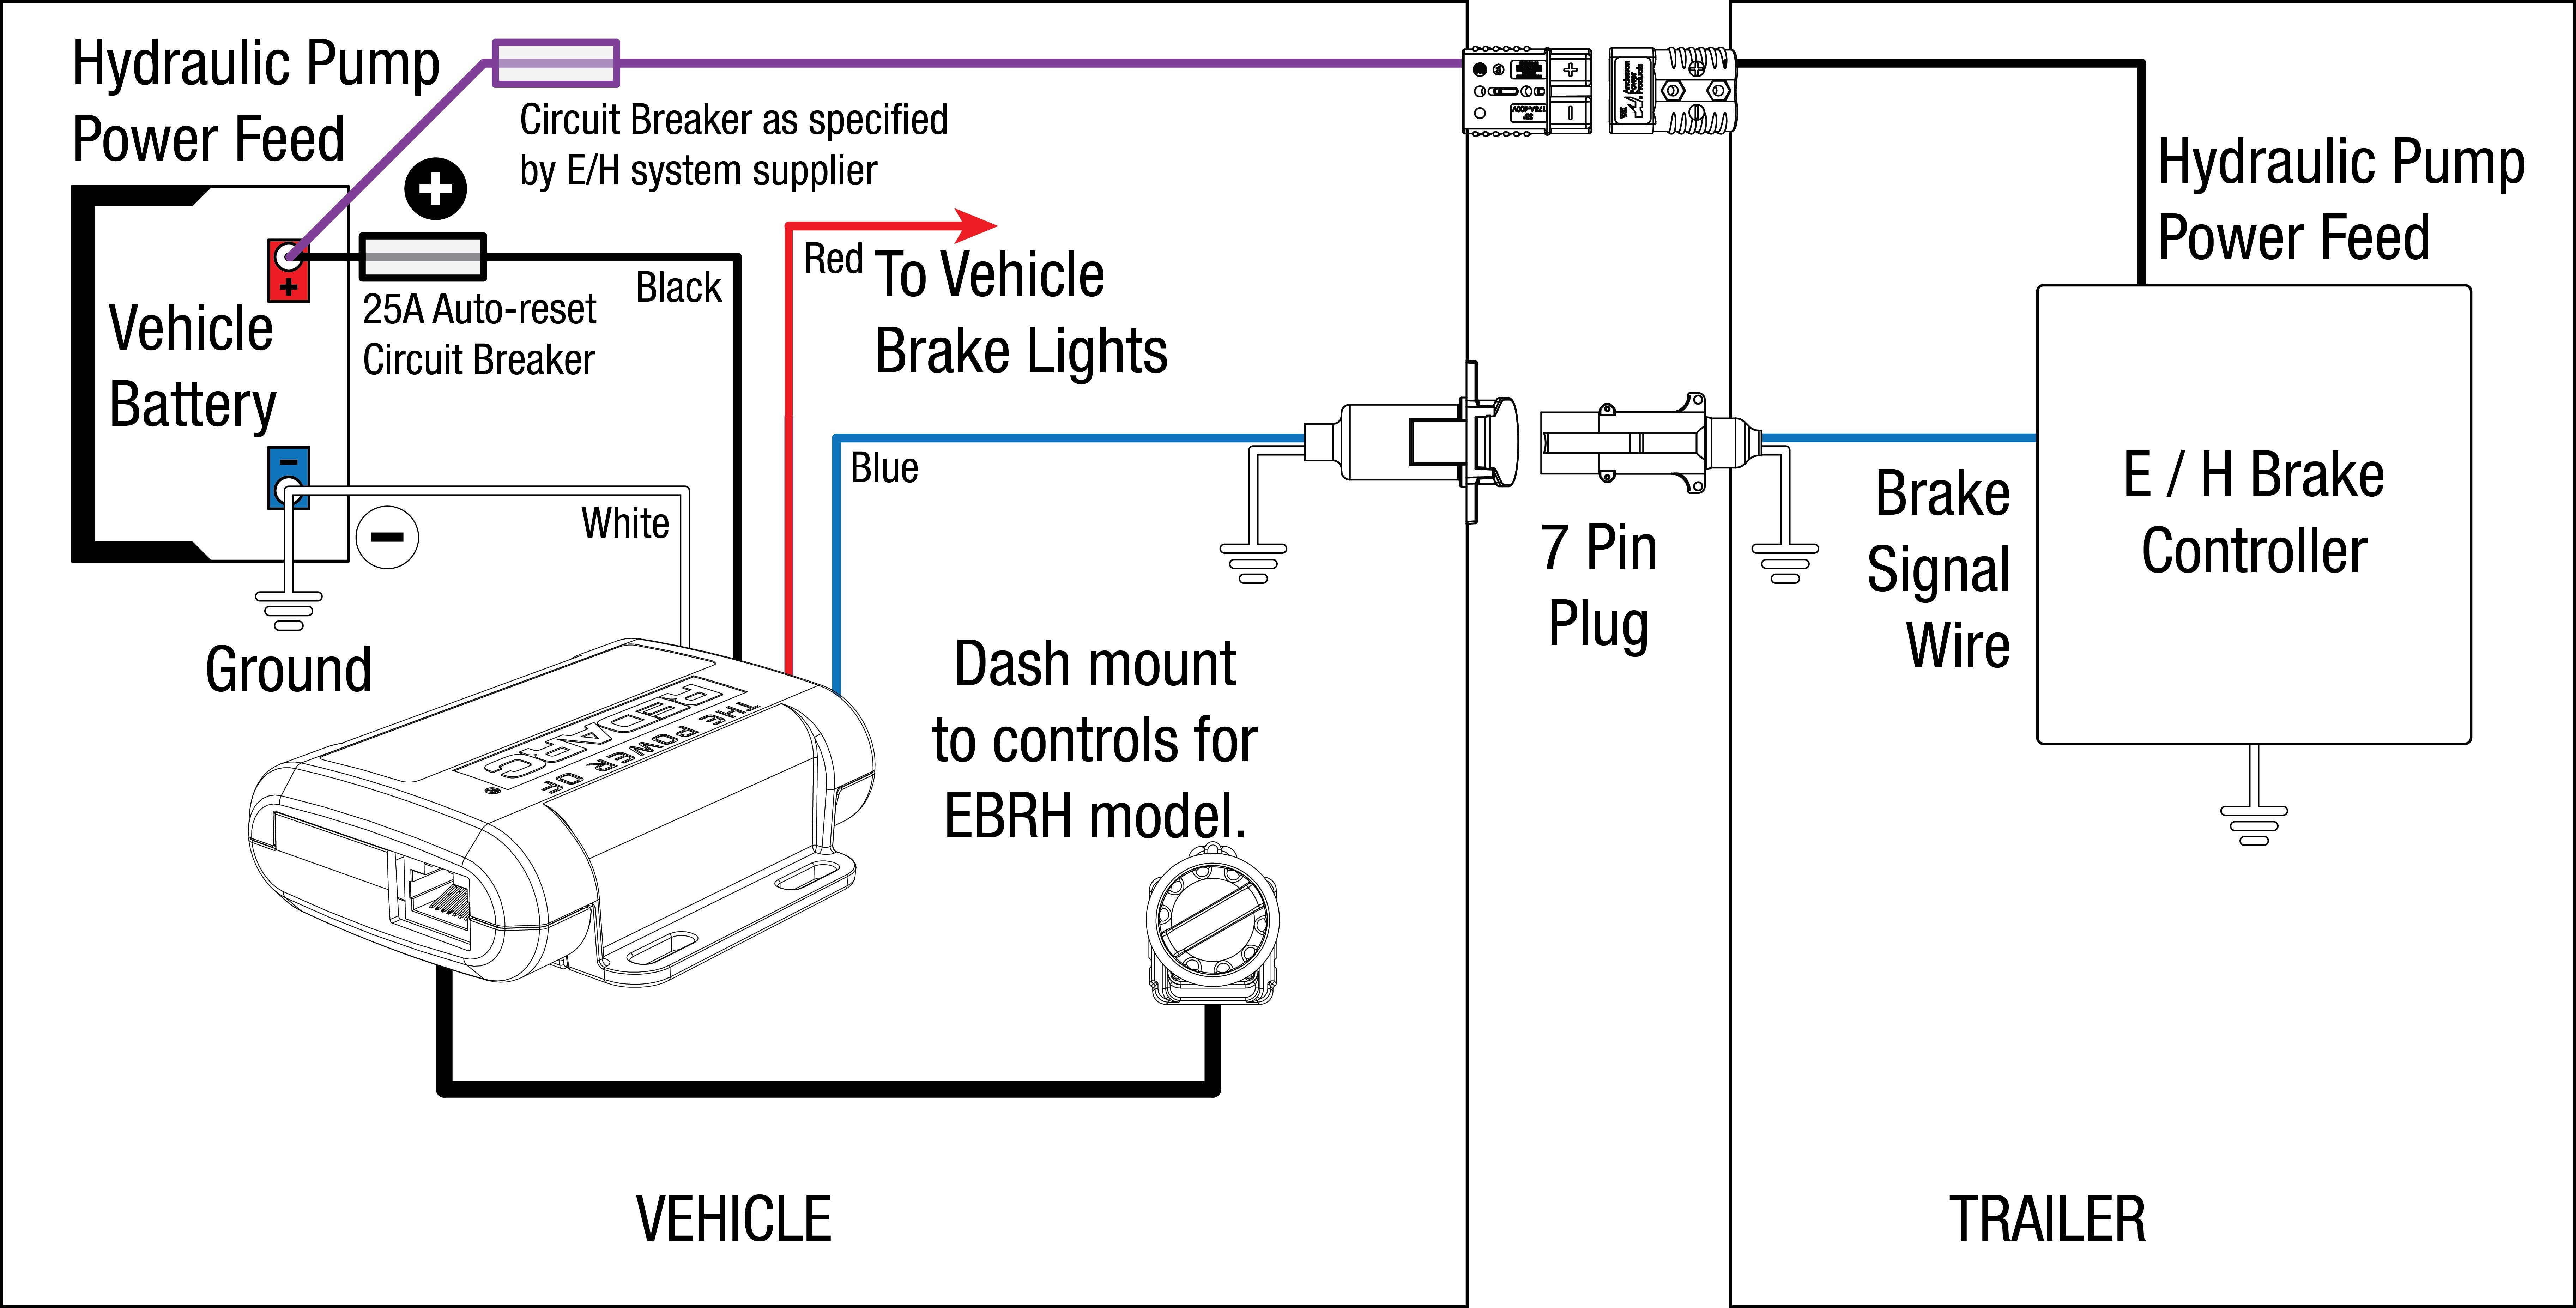 Breakaway Wiring Diagram Trailer Breakaway Switch Wiring Diagram Lovely Electric Trailer Of Breakaway Wiring Diagram